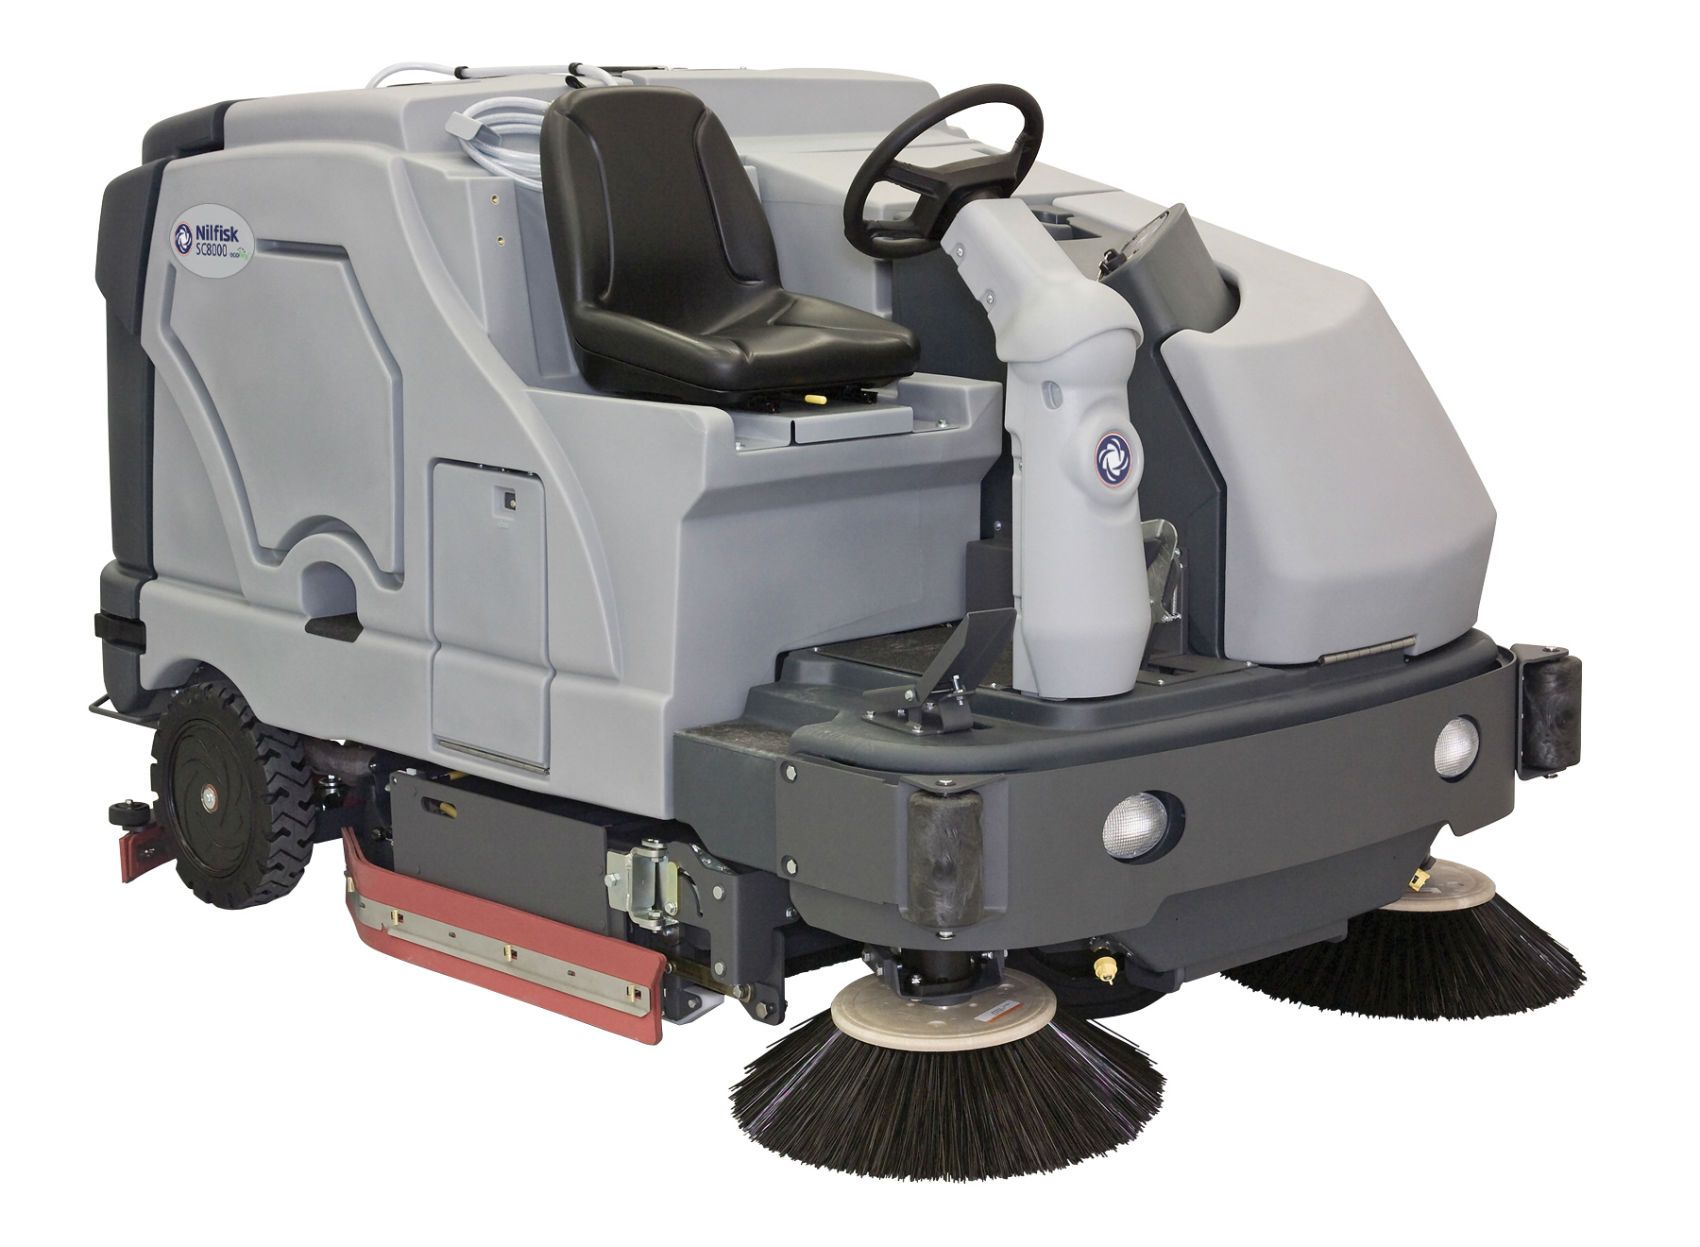 Nilfisk SC8000 Large Ride On Scrubber Dryer